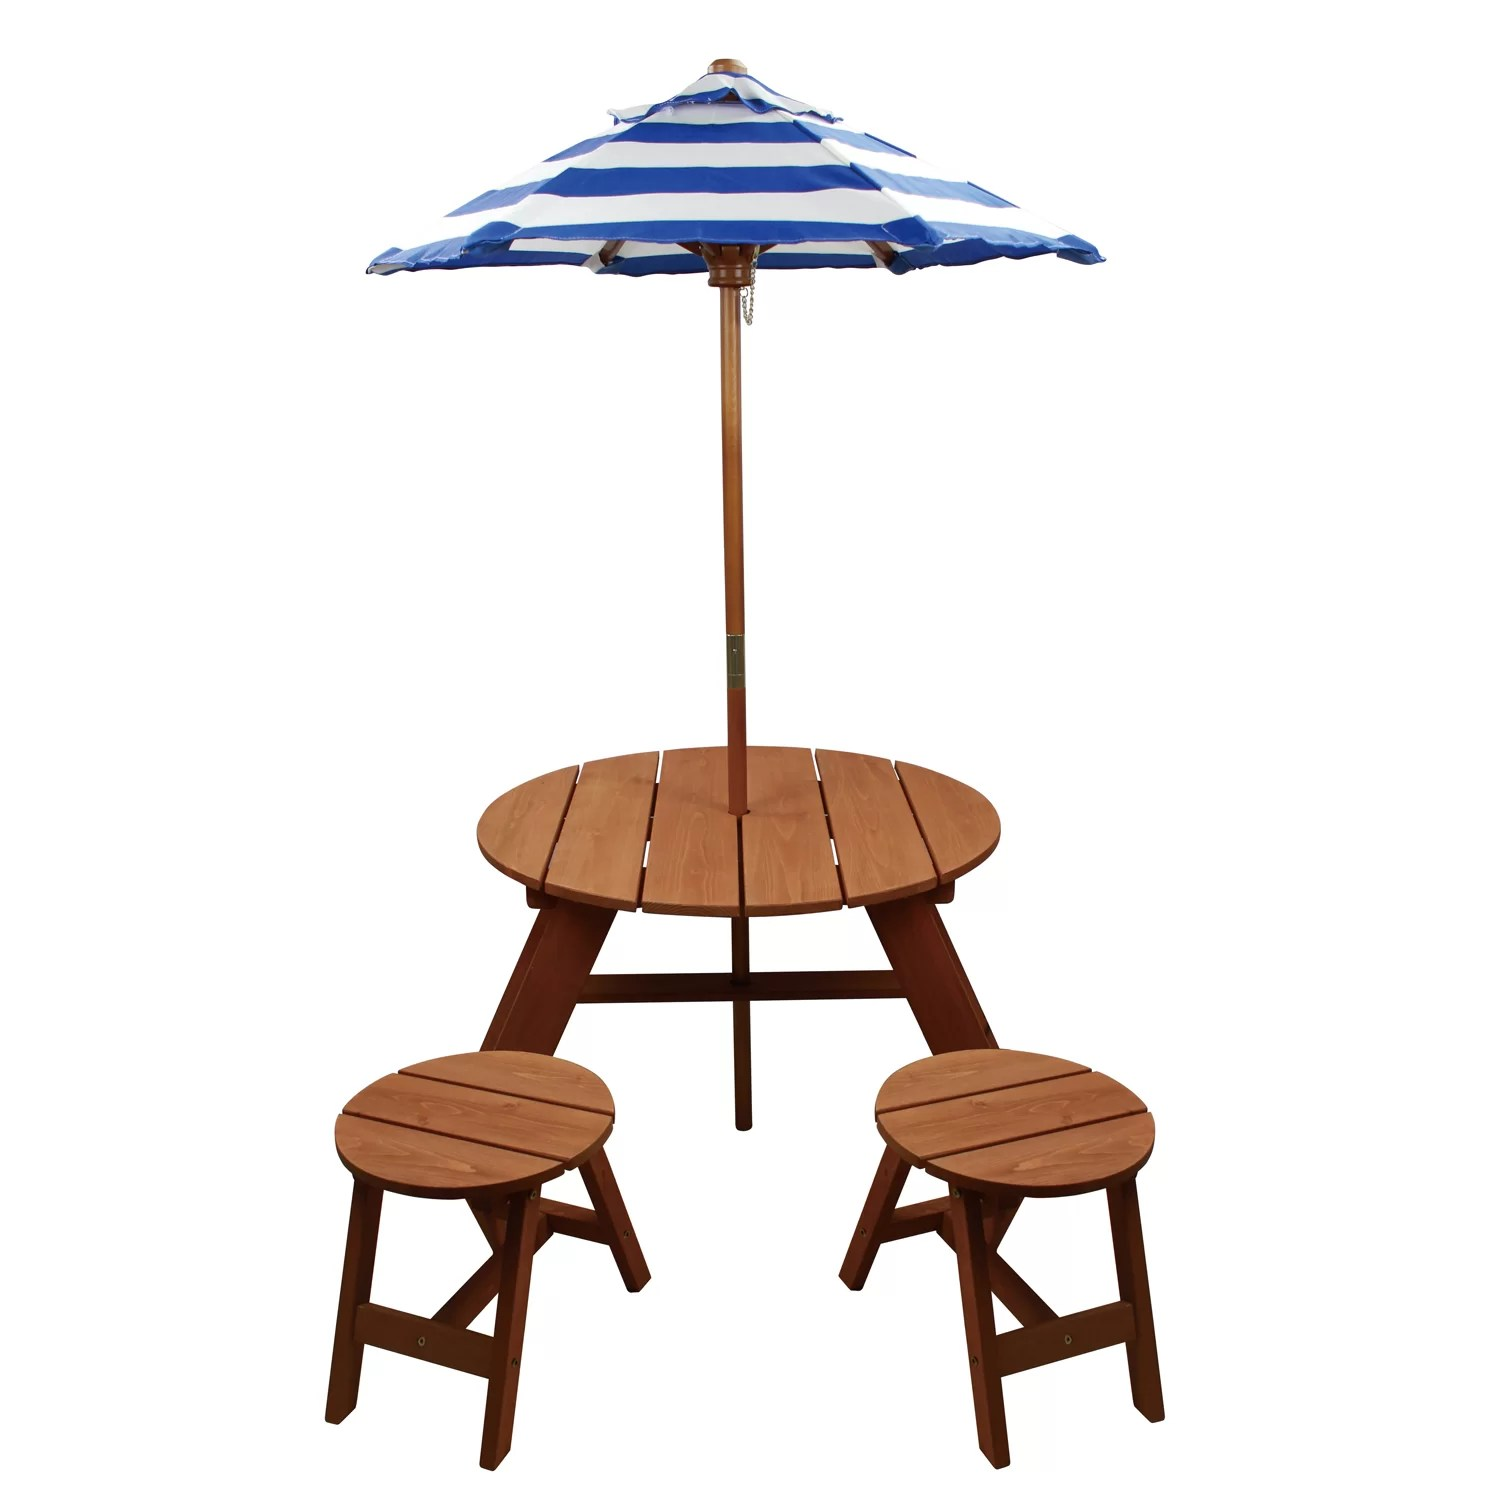 chair king umbrellas bedroom champagne homeware kids 4 piece wood round table and set with